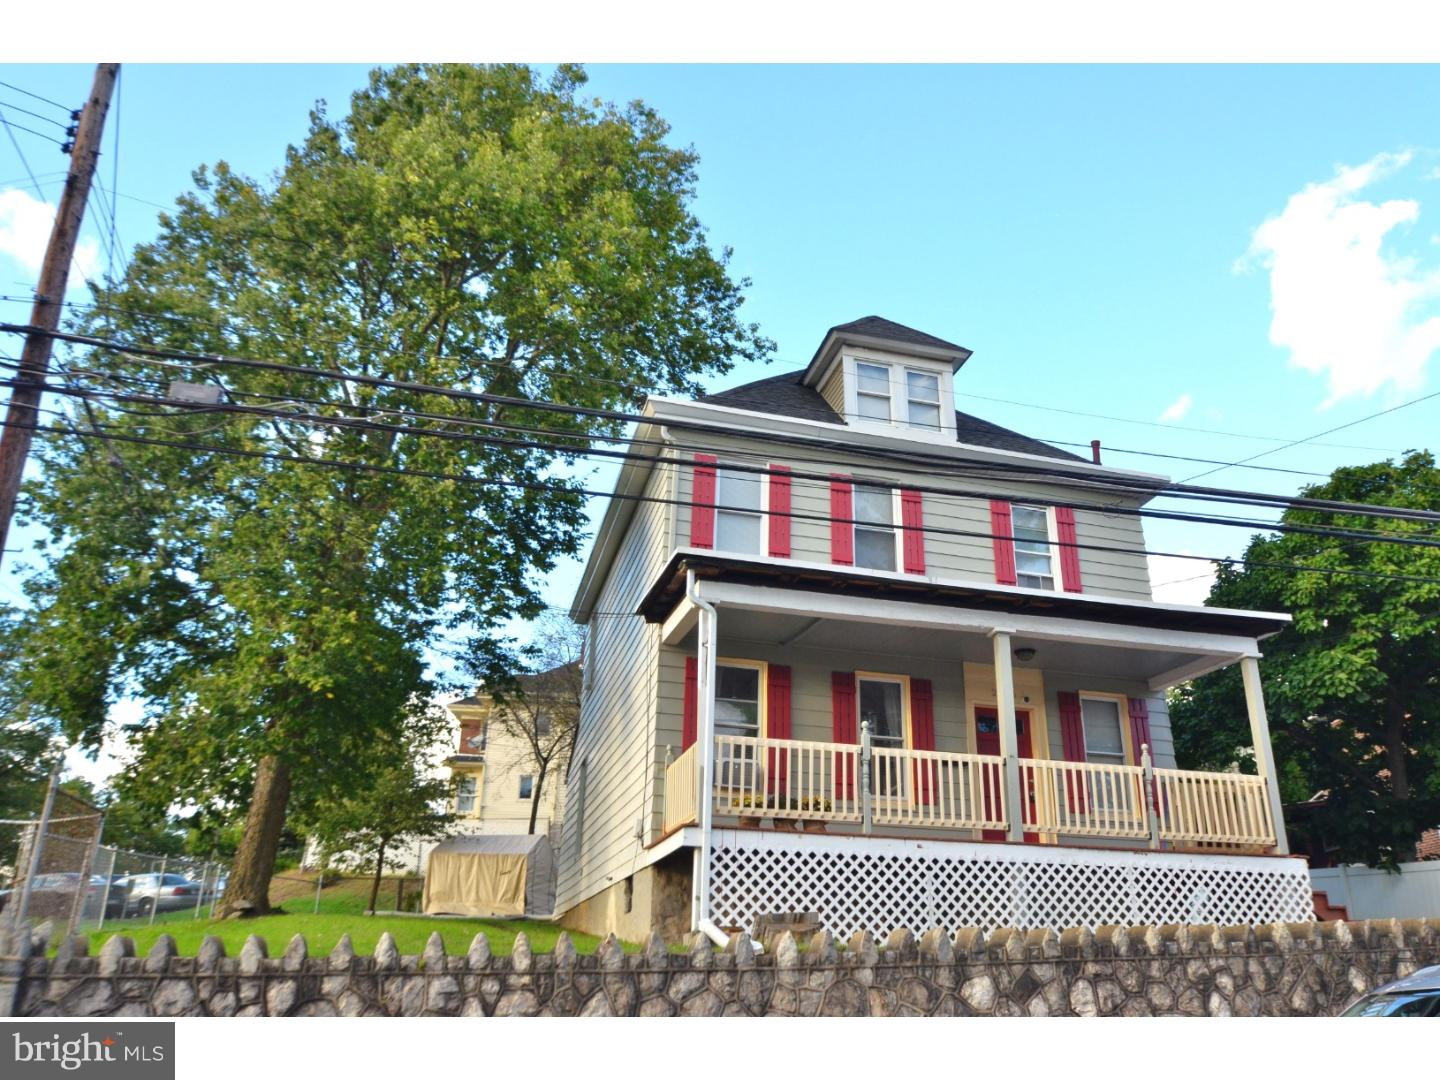 2025 BUTLER STREET, EASTON, PA 18042